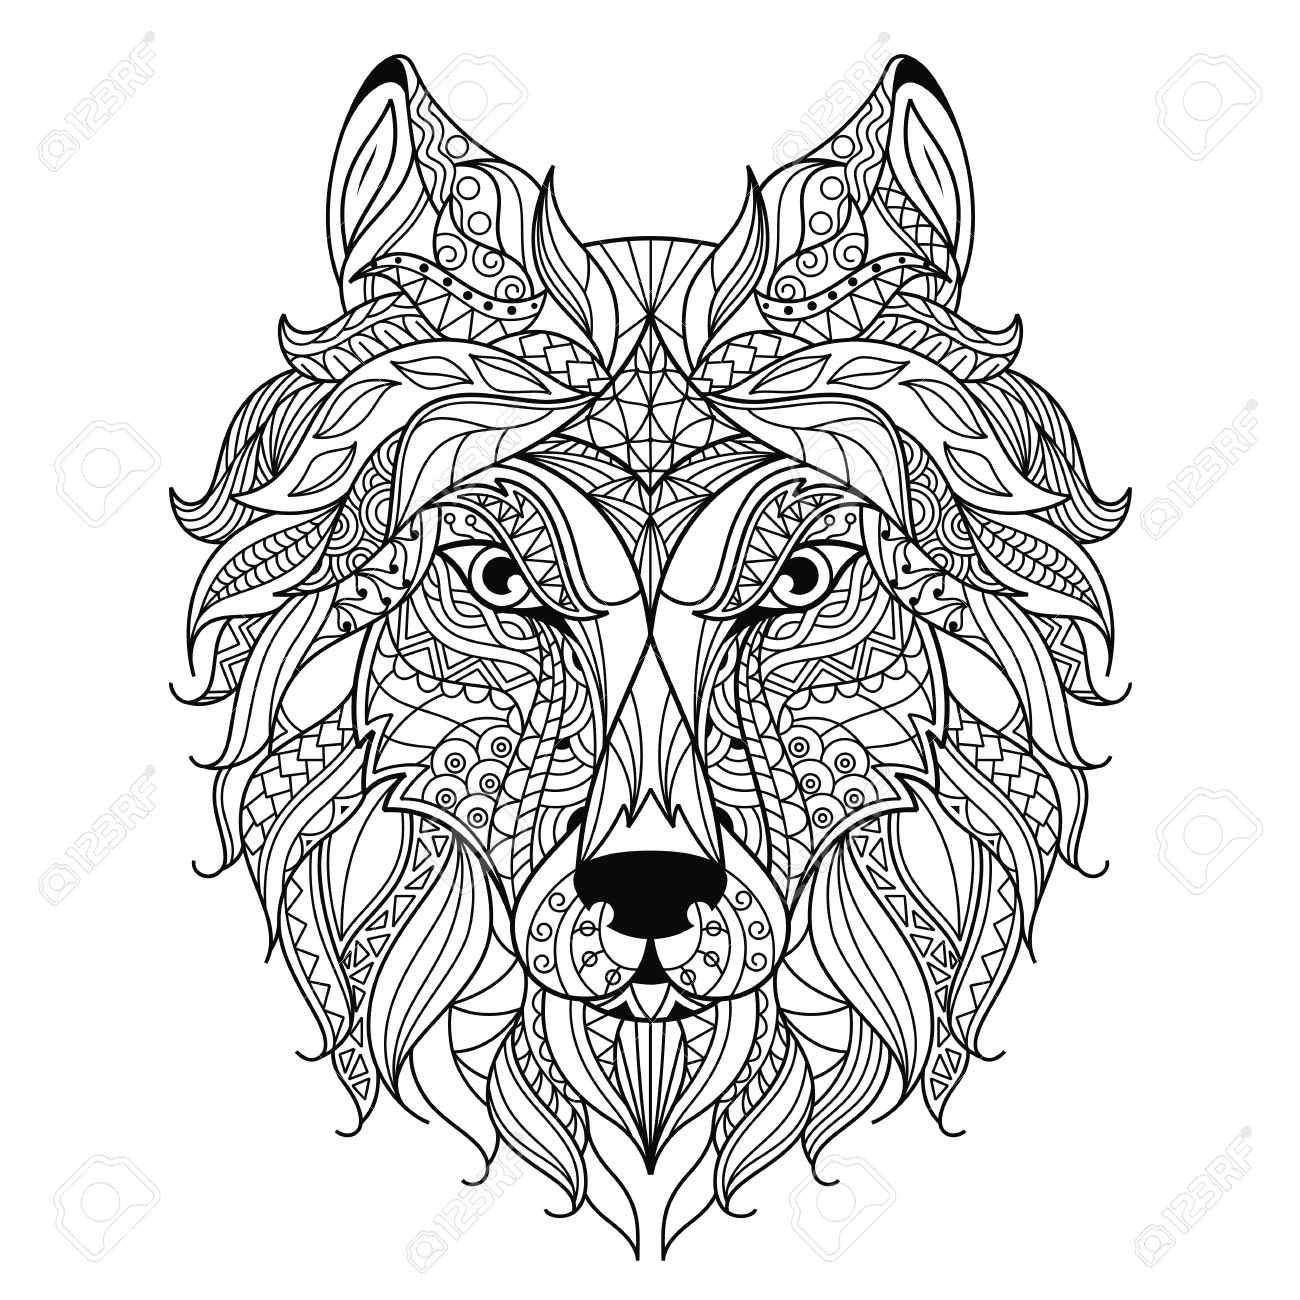 stylized wolf head isolated on white background image for